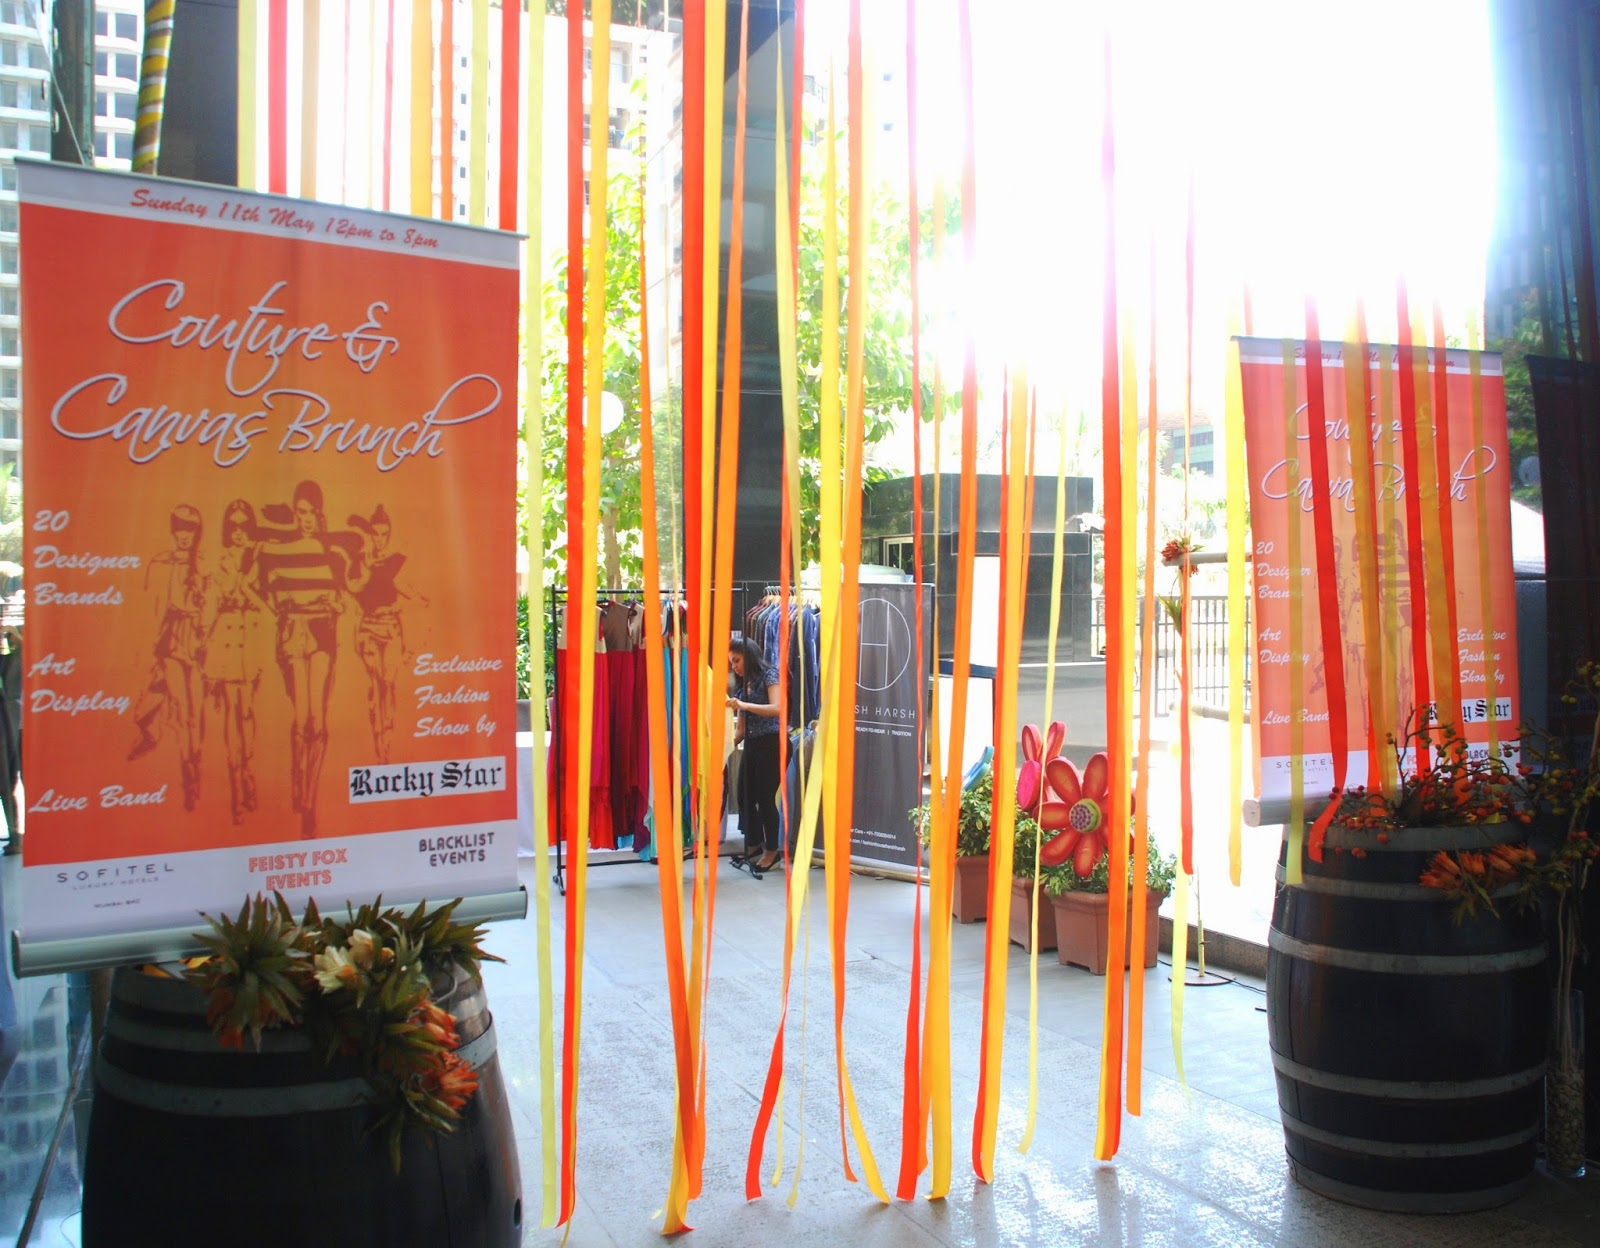 Couture & Canvas Brunch at Sofitel,BKC by Feisty Fox Events